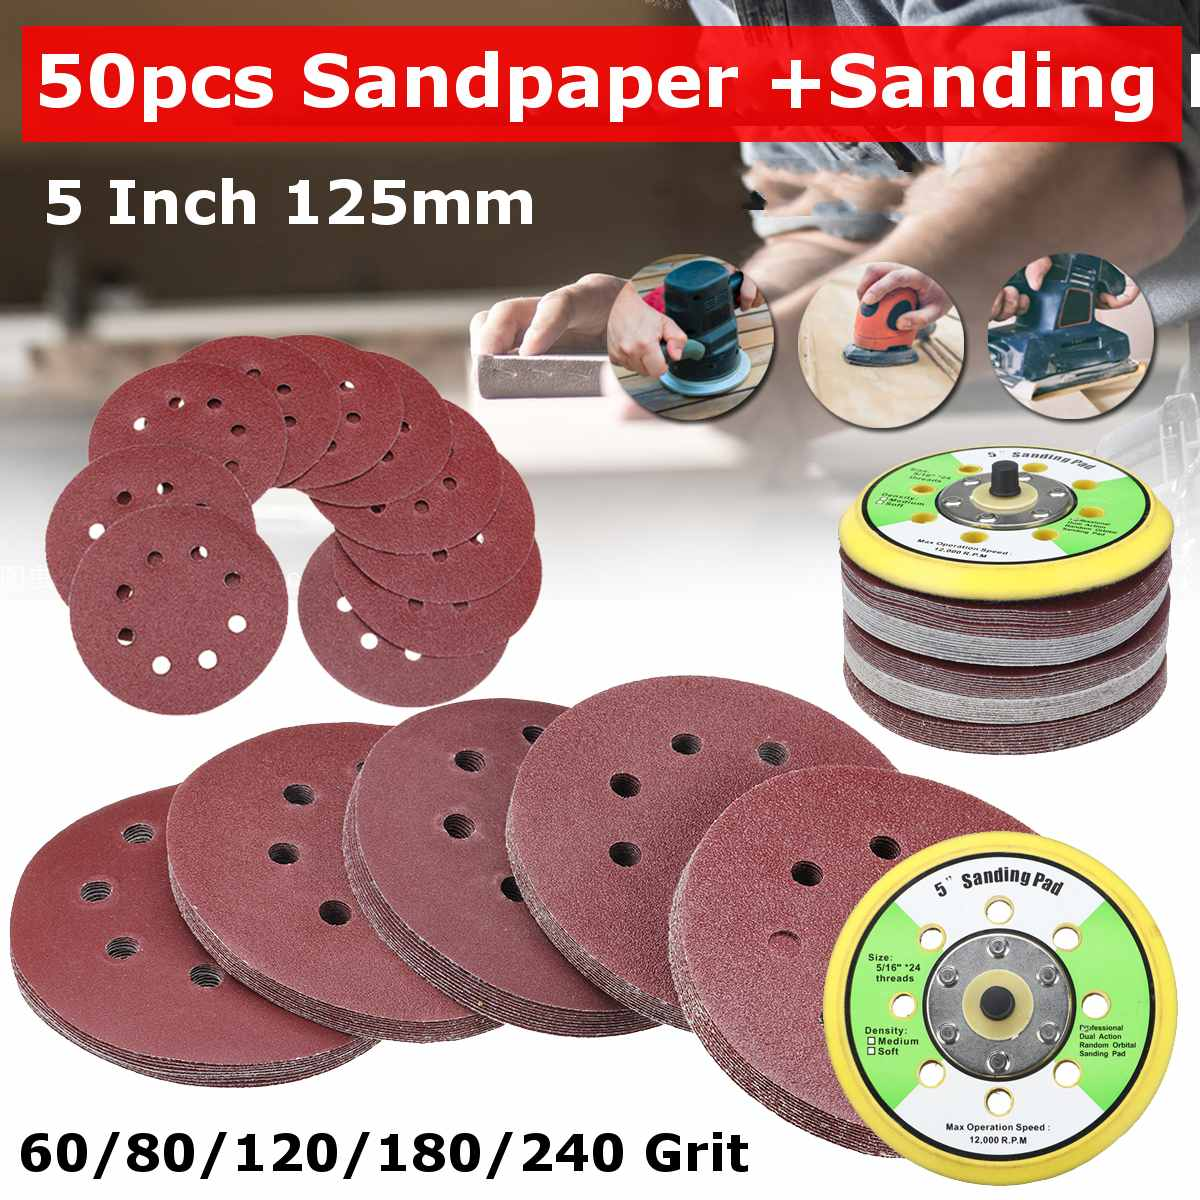 50pcs 5 Inch 125mm Round Sandpaper Eight Hole Disk Sand Sheets Grit 60/80/120/180/240  Hook And Loop Sanding Disc Polish Pad